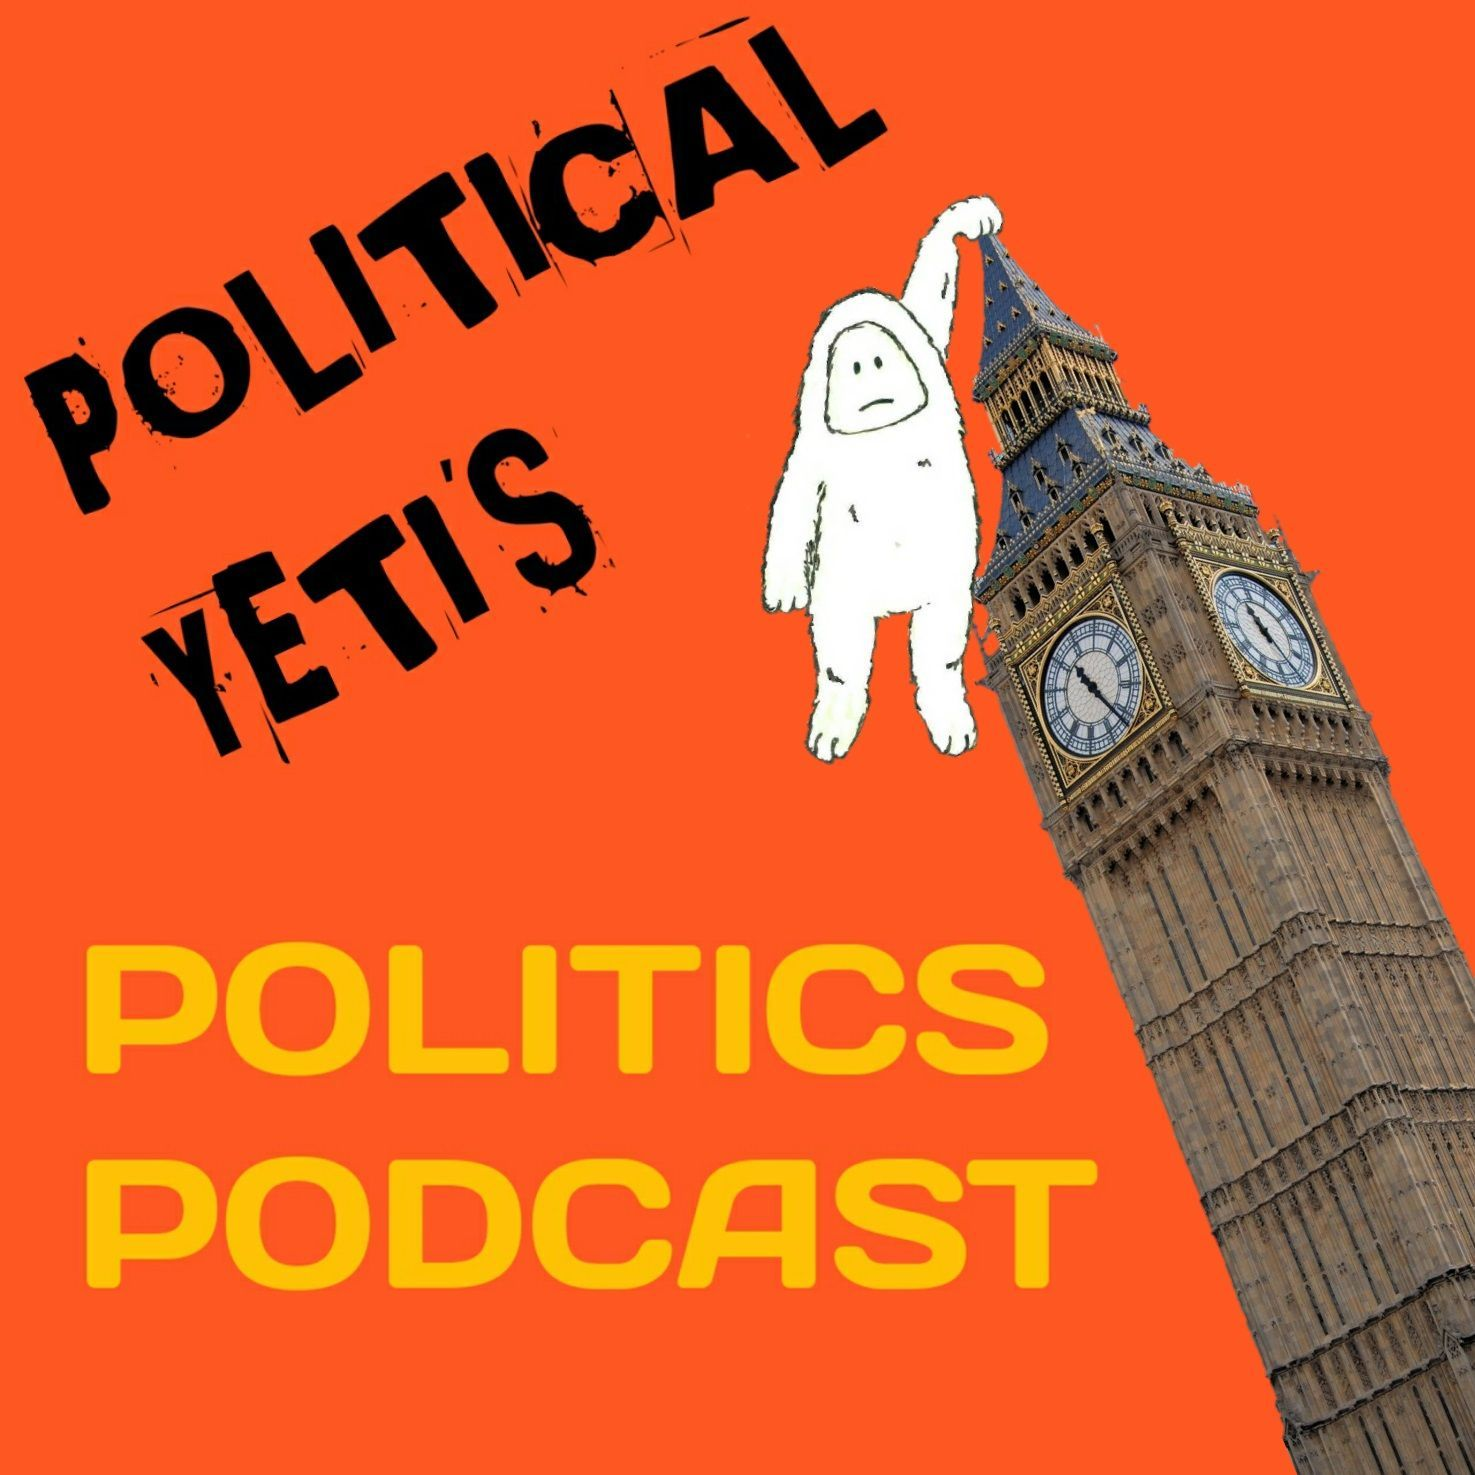 EPISODE 51 - Three men in a pub Easter Special part II